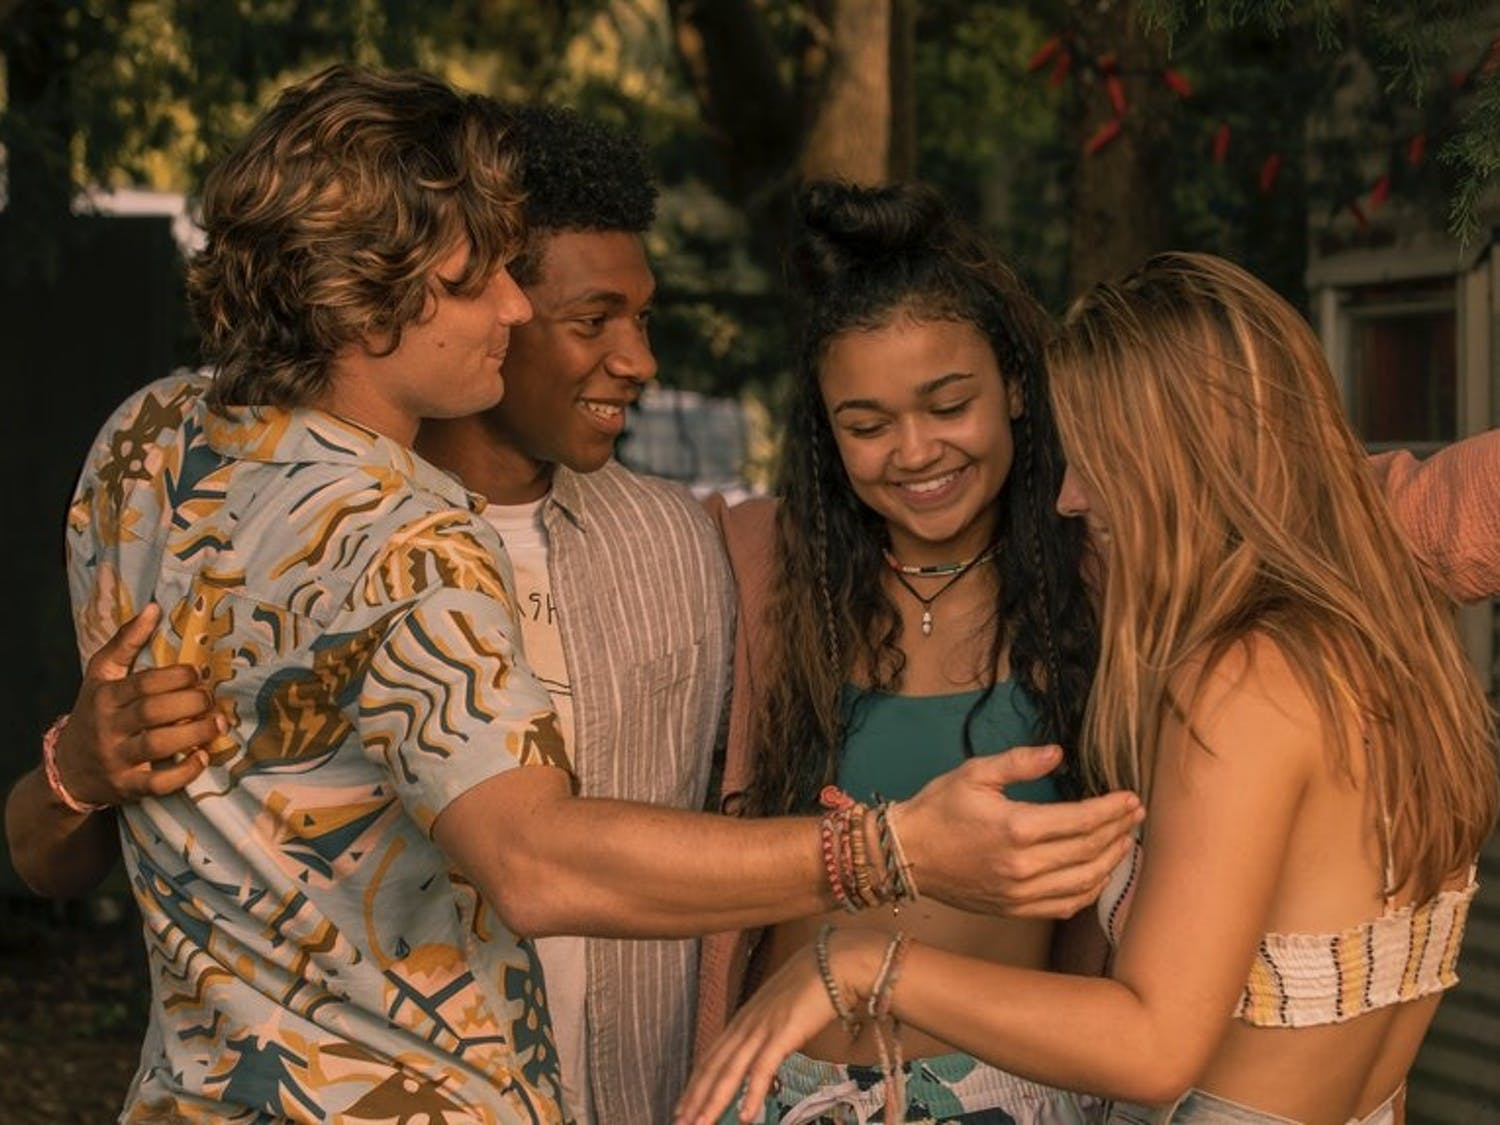 """""""Outer Banks"""" follows the social divide on the OBX island and puts its rigidity to the test with friendship and romance."""